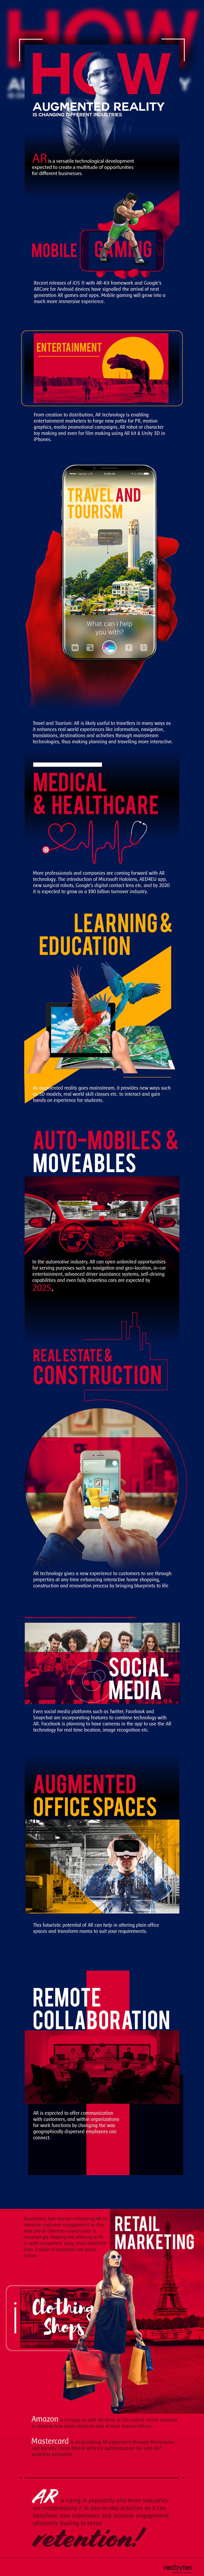 https://www.redbytes.in/wp-content/uploads/2018/01/How-Augmented-Reality-is-Changing-the-Future-of-Businesses-Infographics.jpg